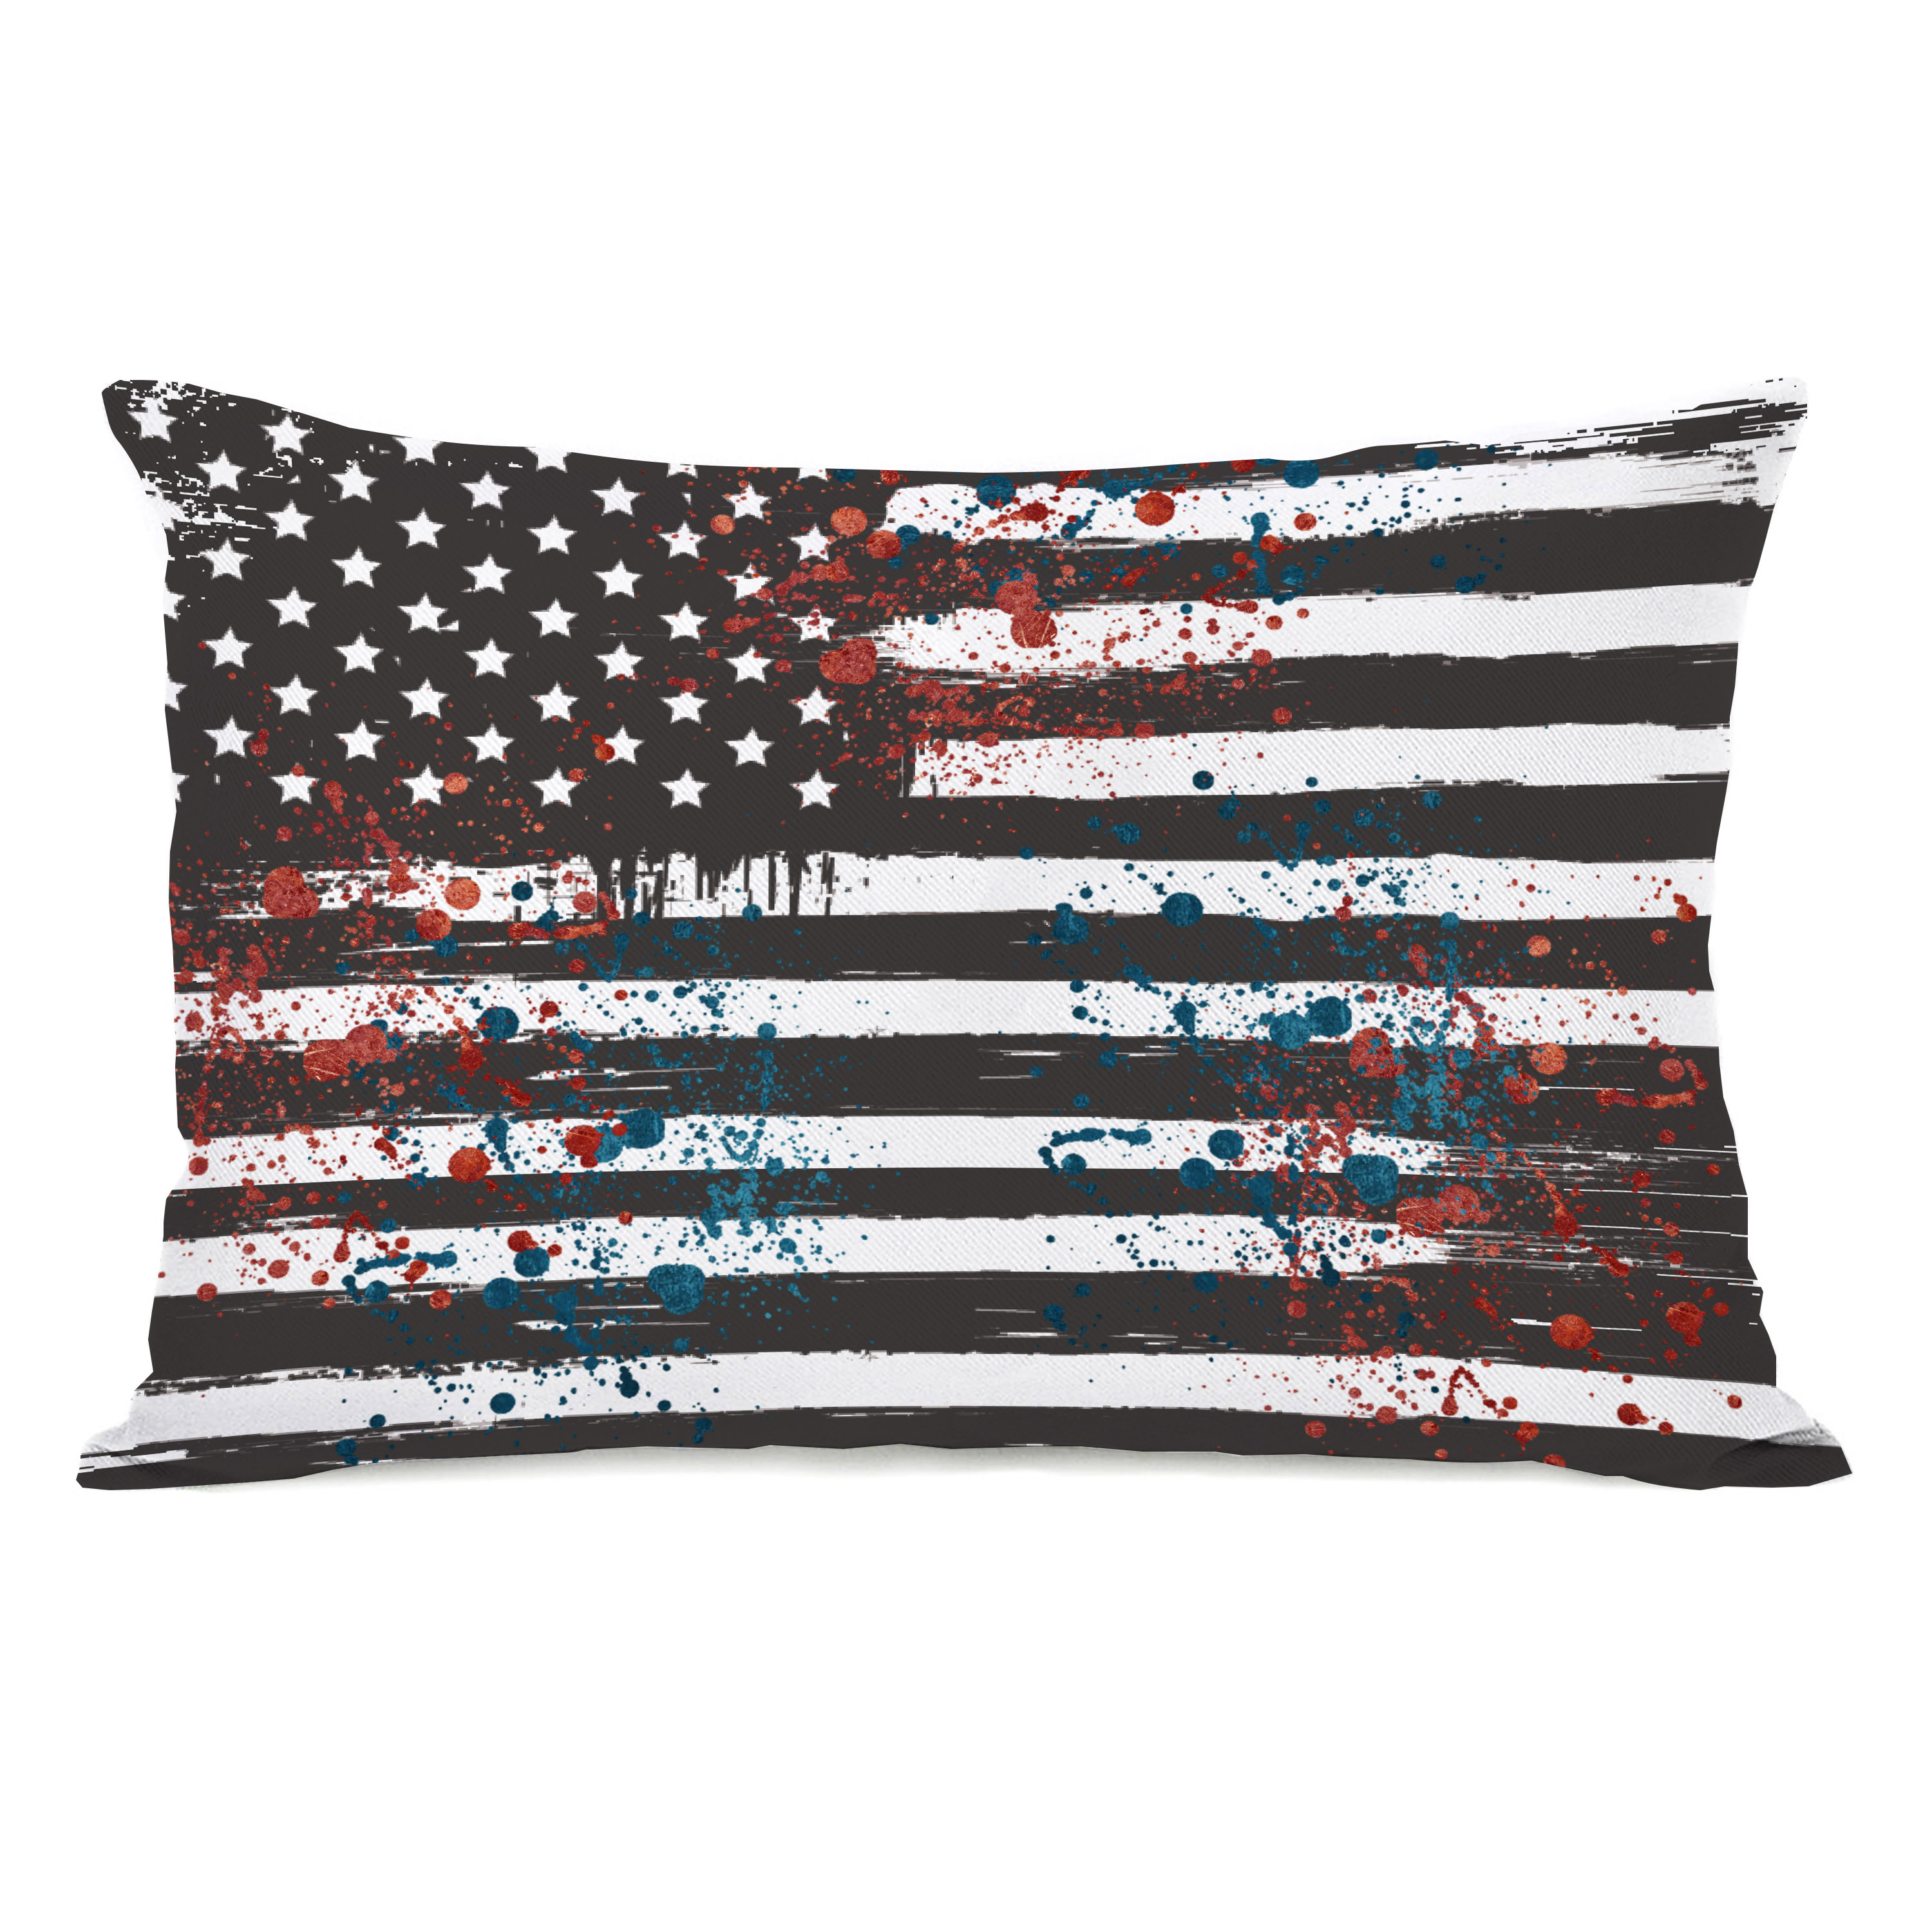 Grayscale Flag Splatters - Gray 14x20 Pillow by OBC